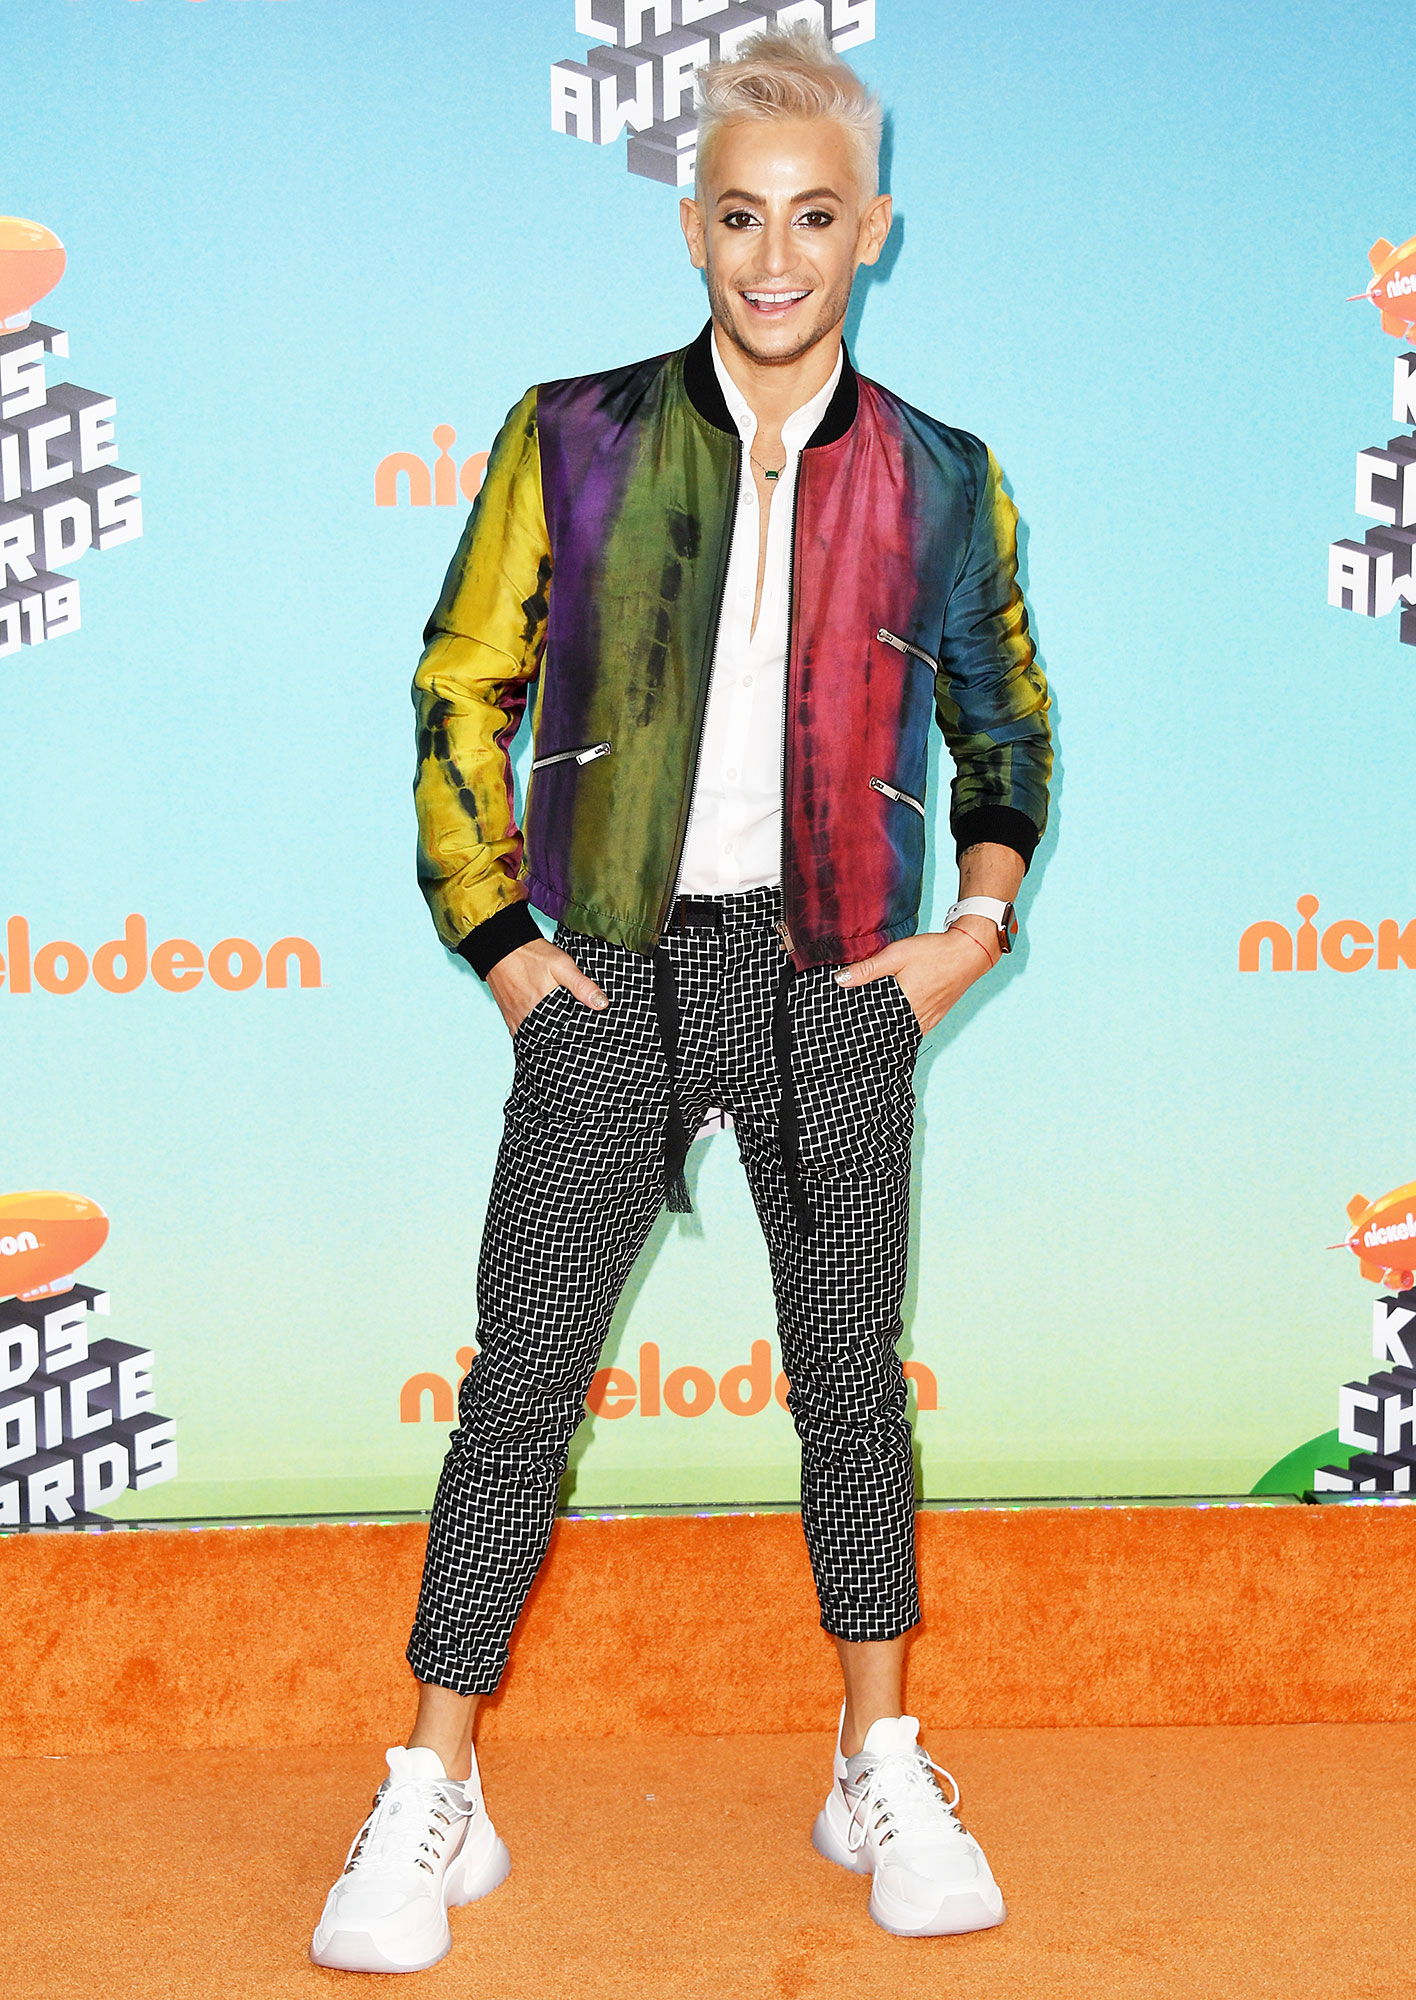 Nickelodeon Kids Choice Awards 2019 Frankie Grande - Ariana Grande's older brother looked fabulous (as always) in a black and white capris, a multi-colored jacket and fresh white kicks.